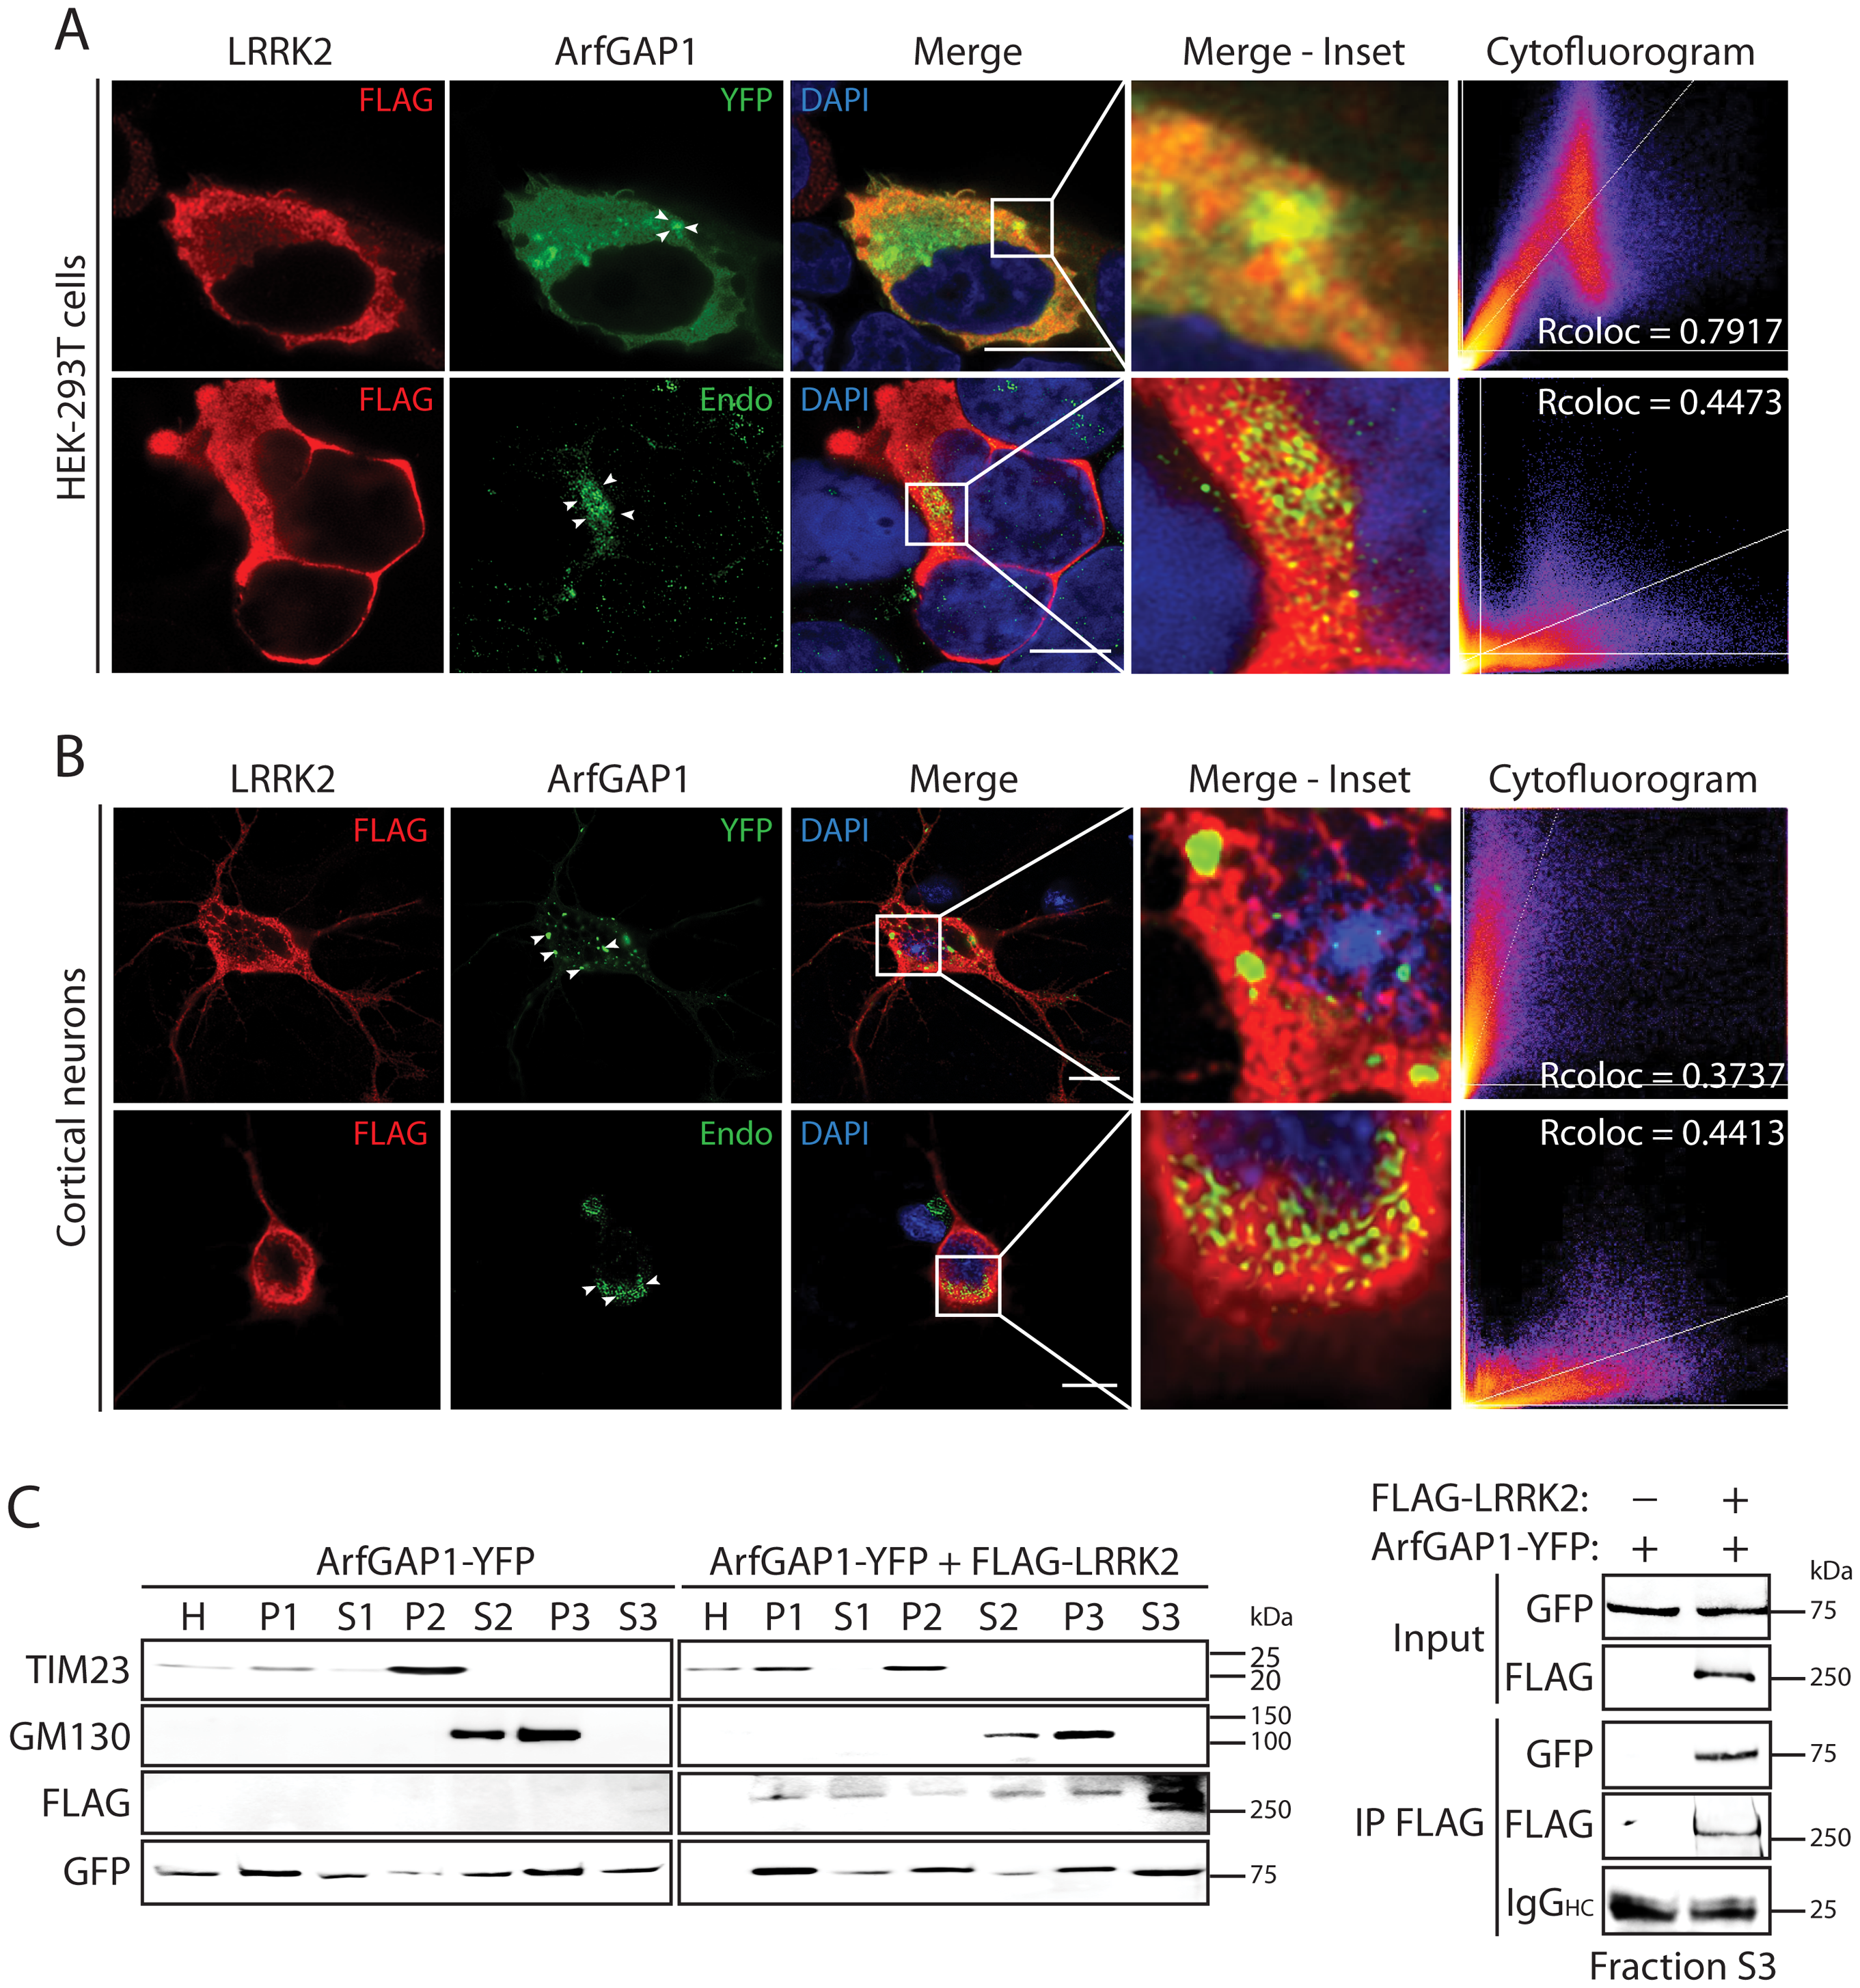 Co-localization of LRRK2 and ArfGAP1 in mammalian cells and neurons.